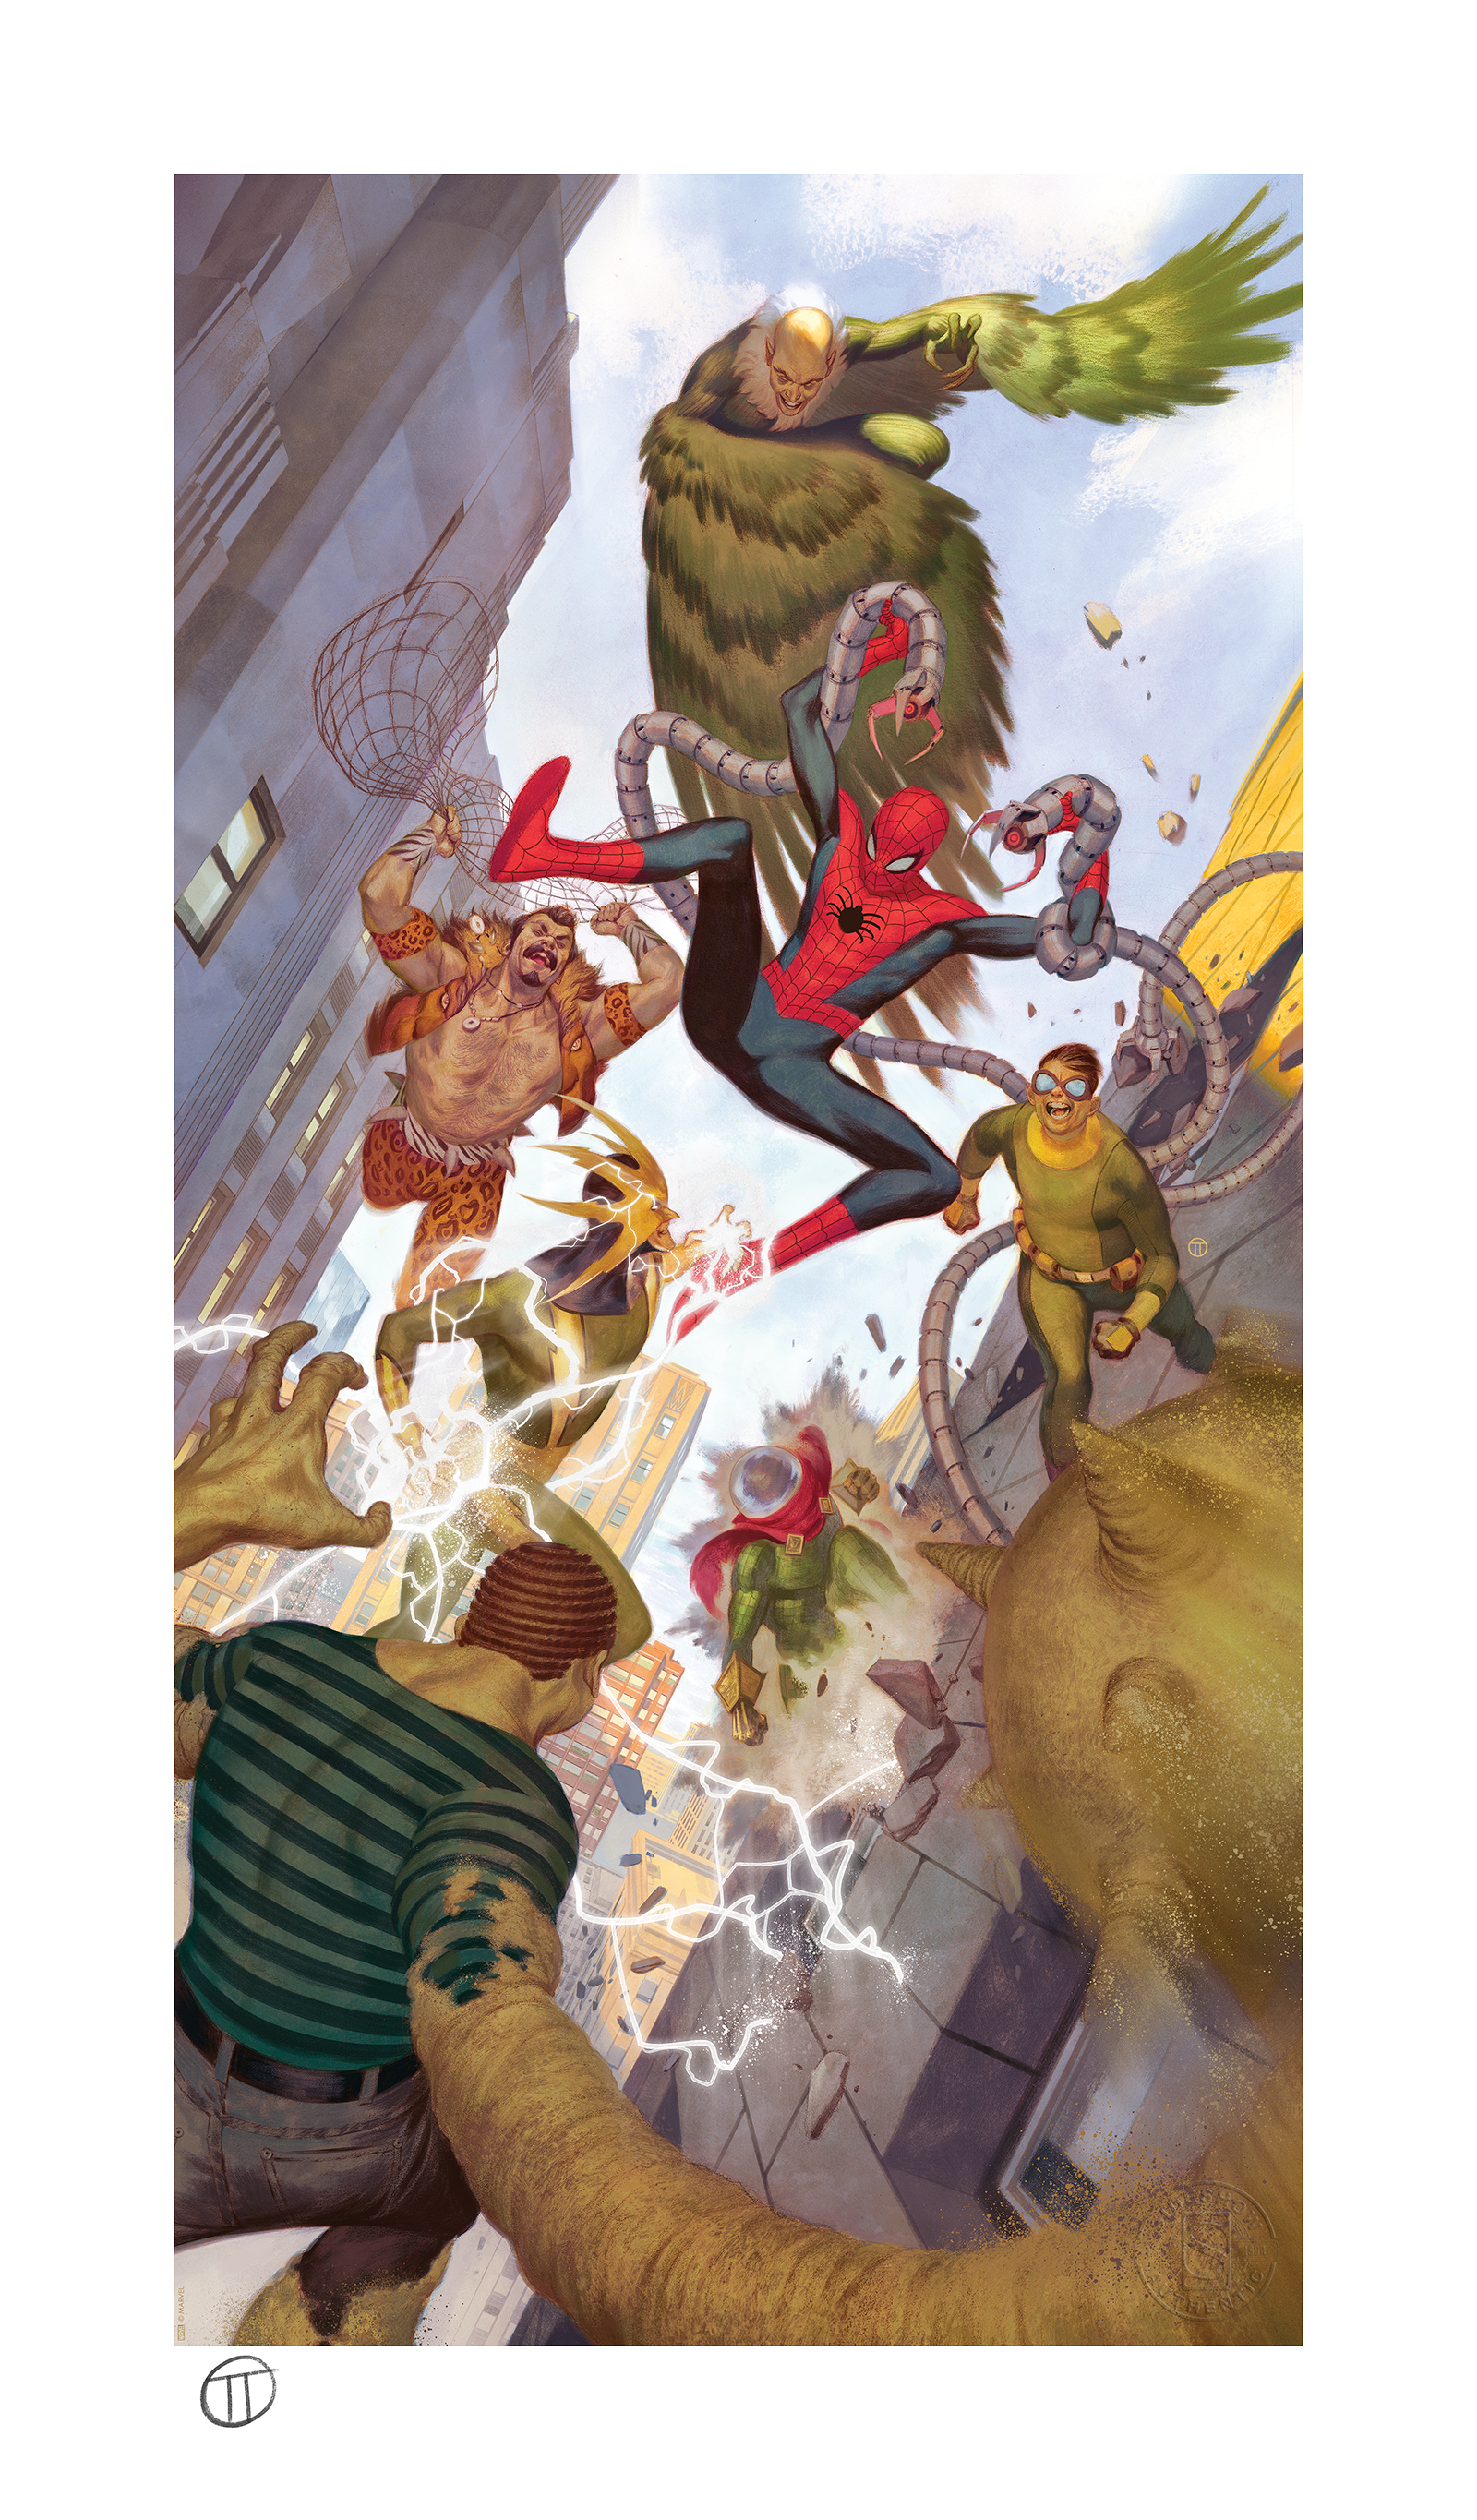 Sideshow Collectibles Spider-Man vs Sinister Six Art Print